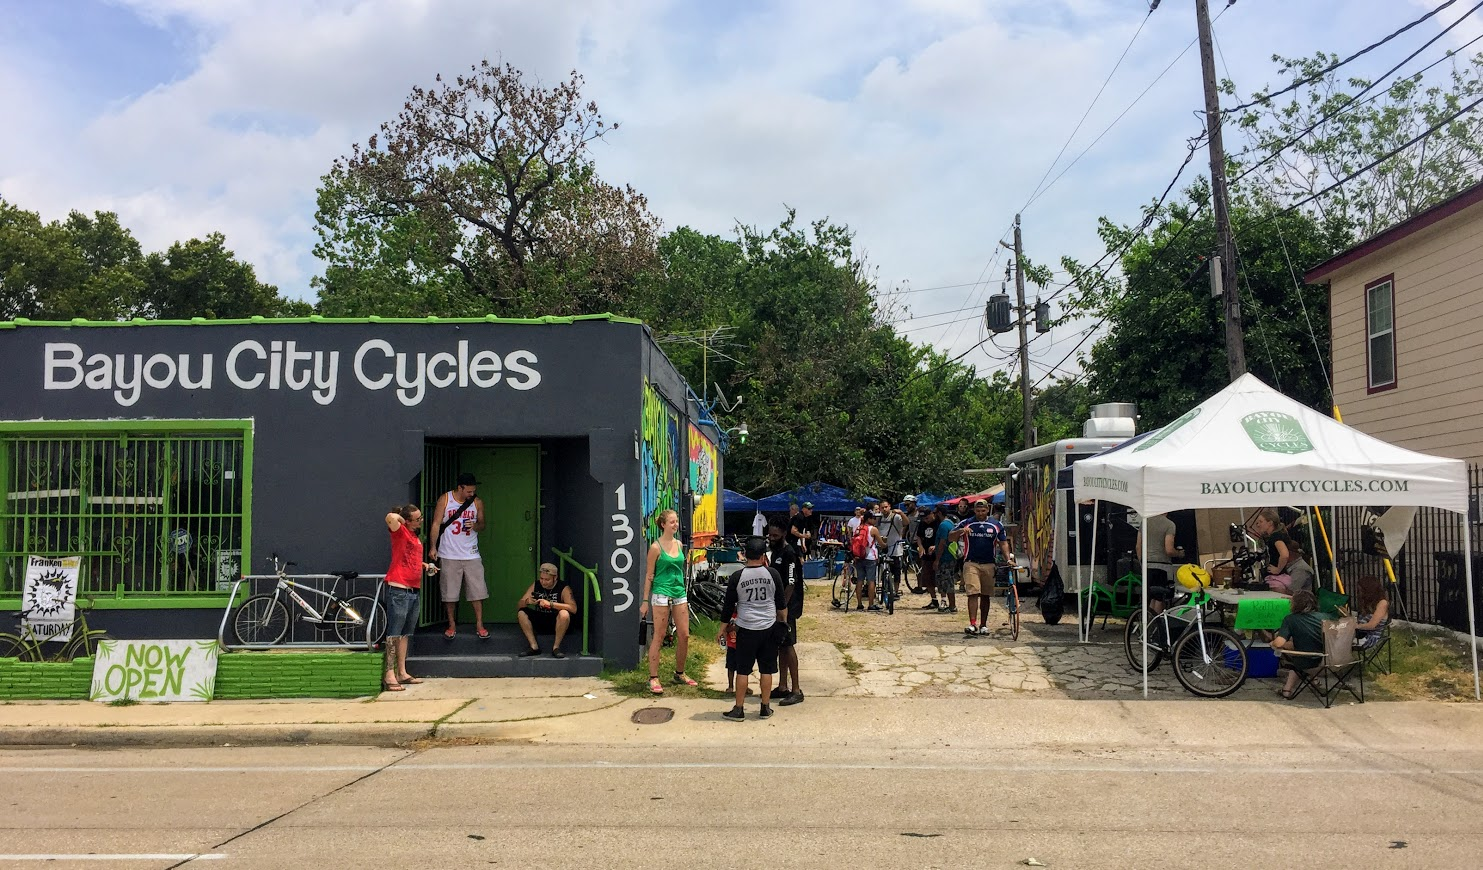 Bayou City Cycles storefront with many people out front, along with a food cart and tent next to the building